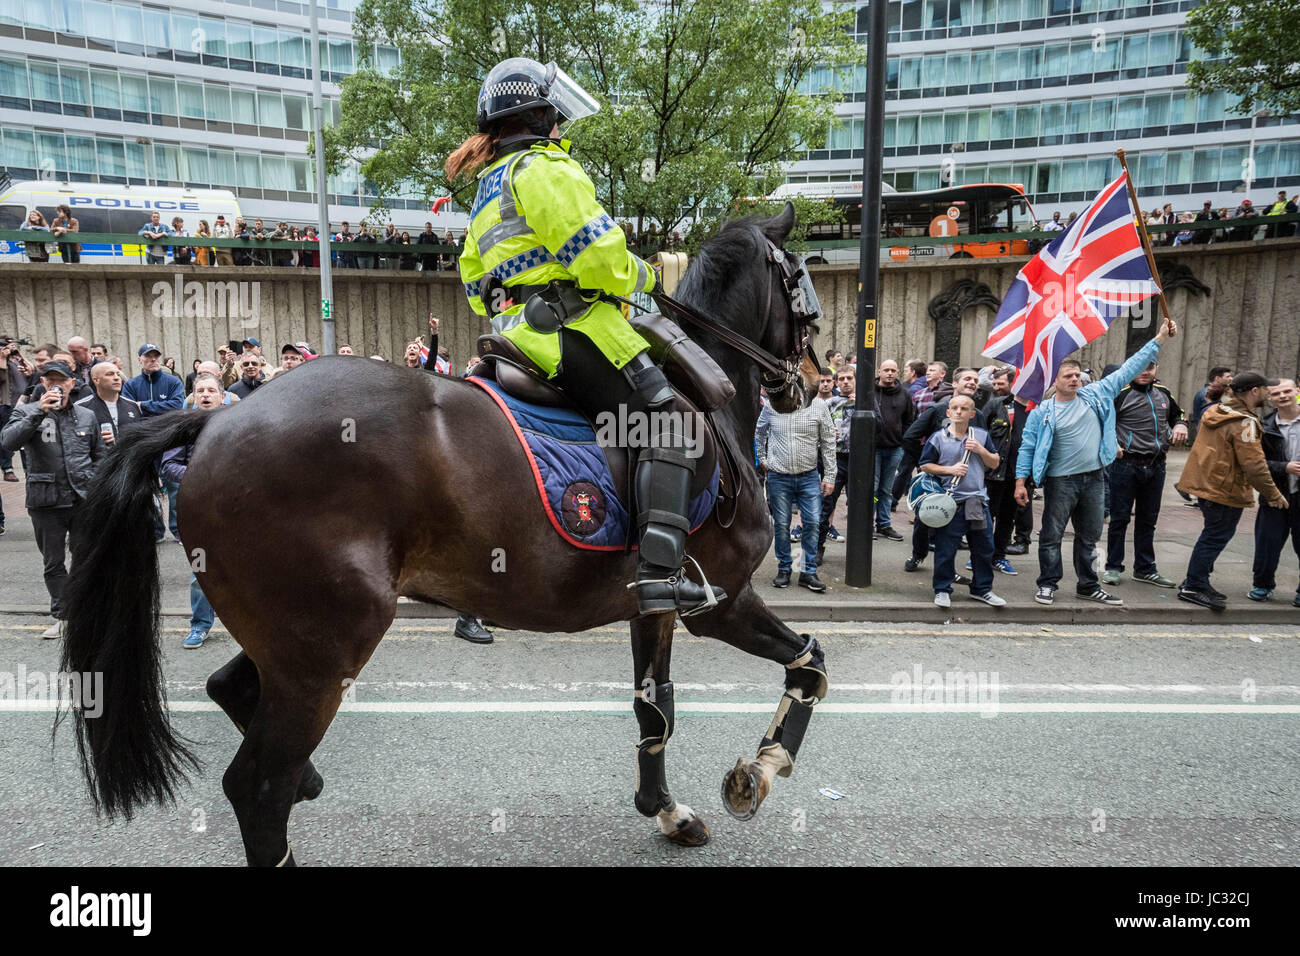 About 1,000 attend right-wing 'Unite Against Hate' anti-Islamic march and rally lead by Tommy Robinson in Manchester Stock Photo